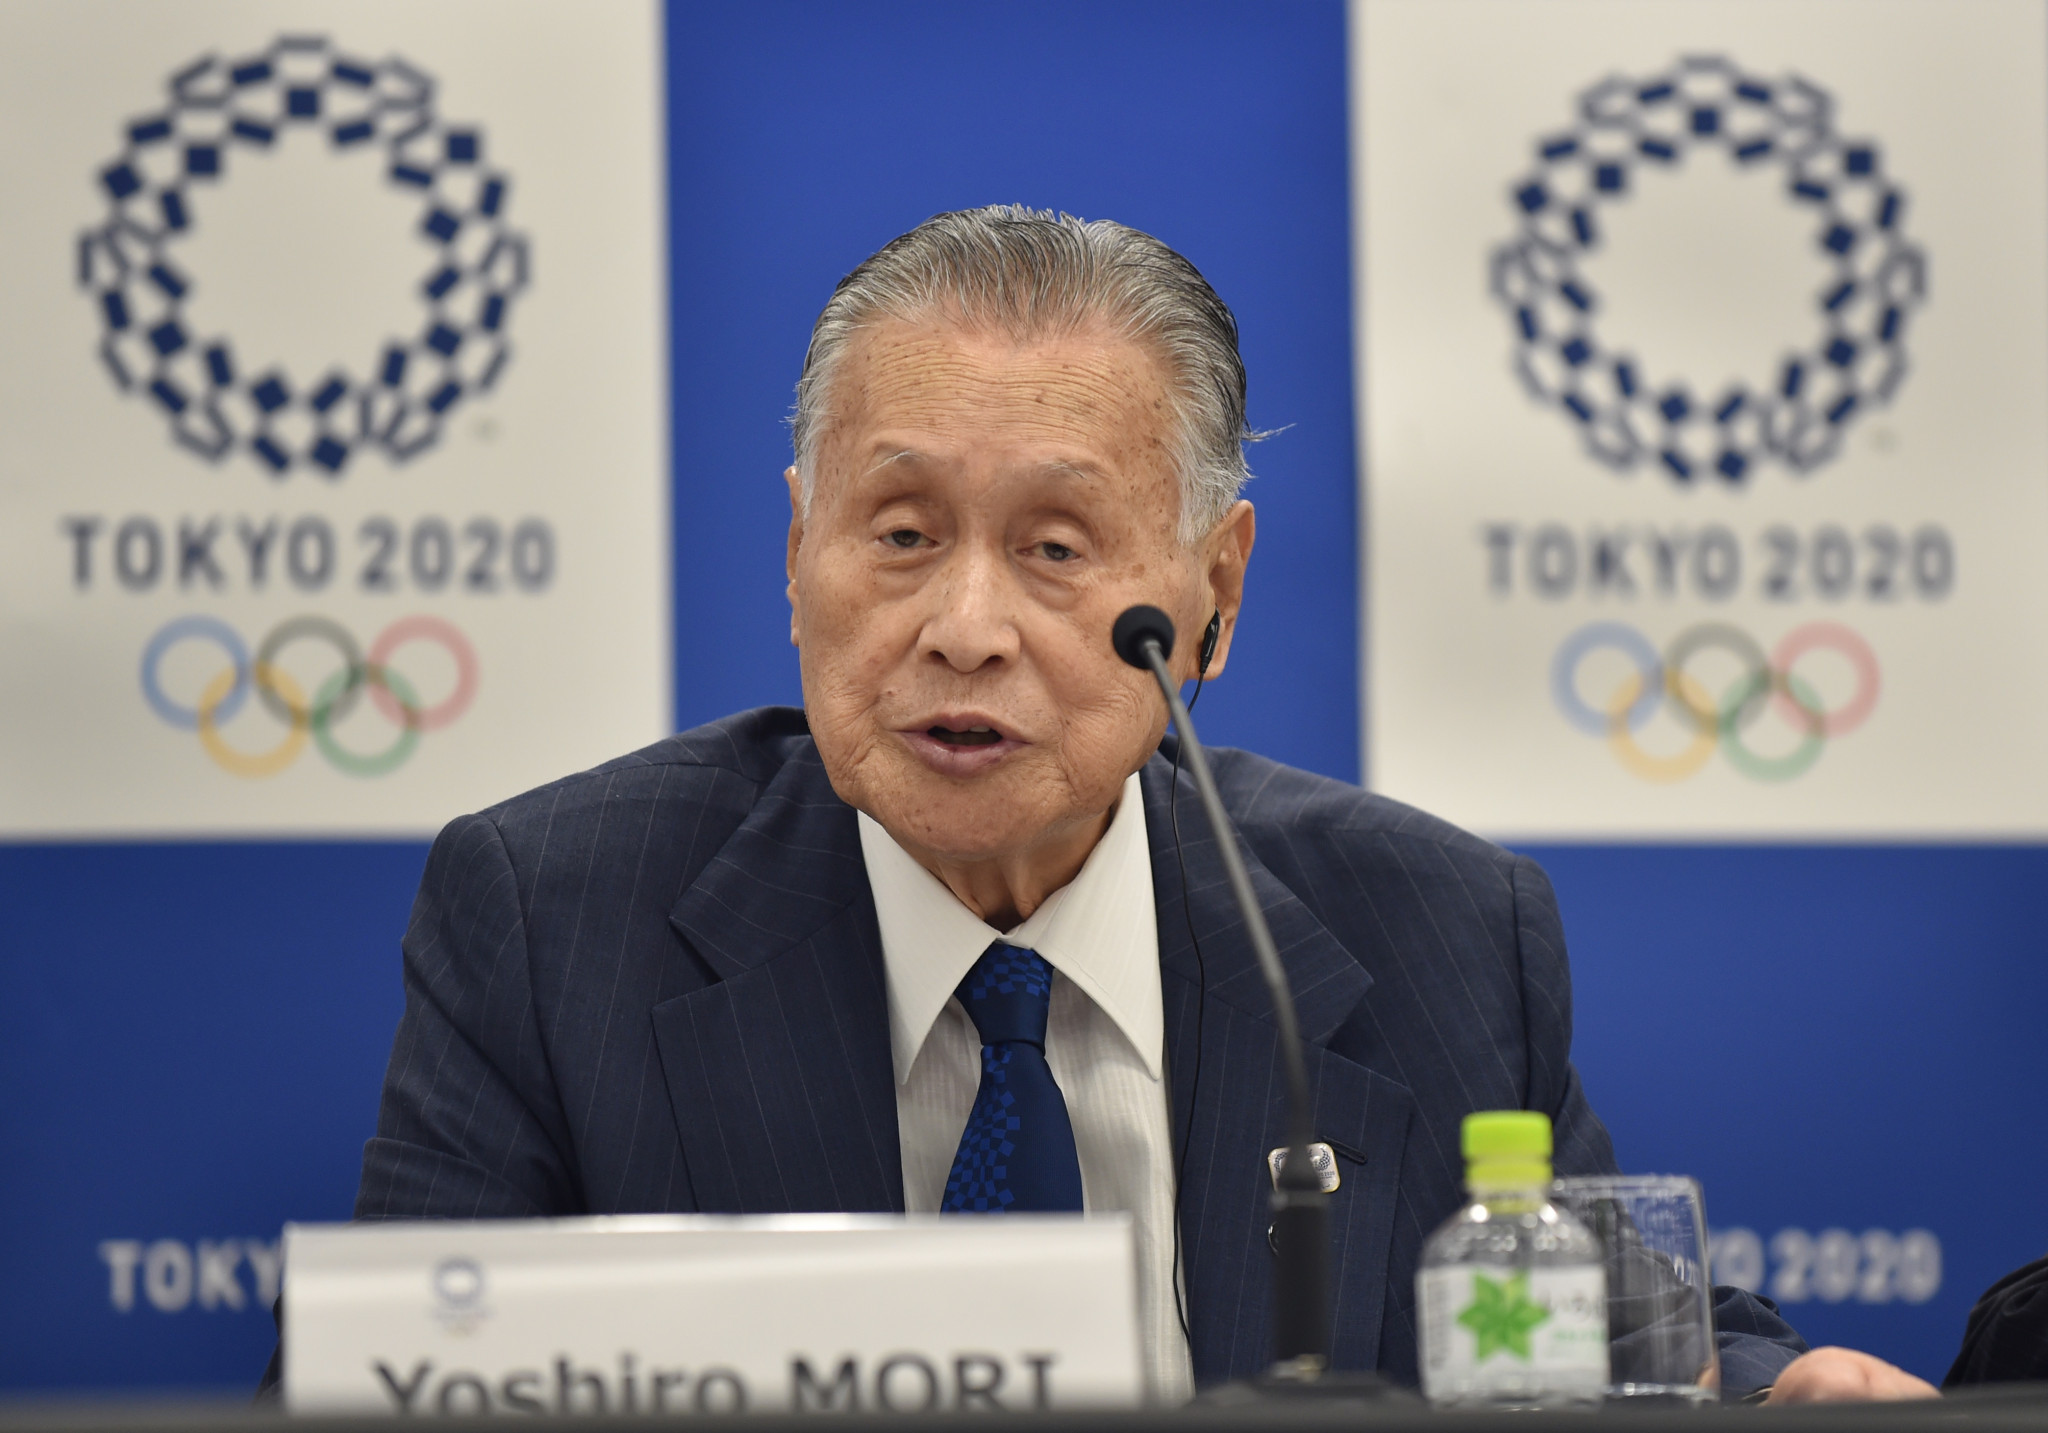 Tokyo 2020 President warns WBSC money-saving plans could derail hopes of more matches at Olympics